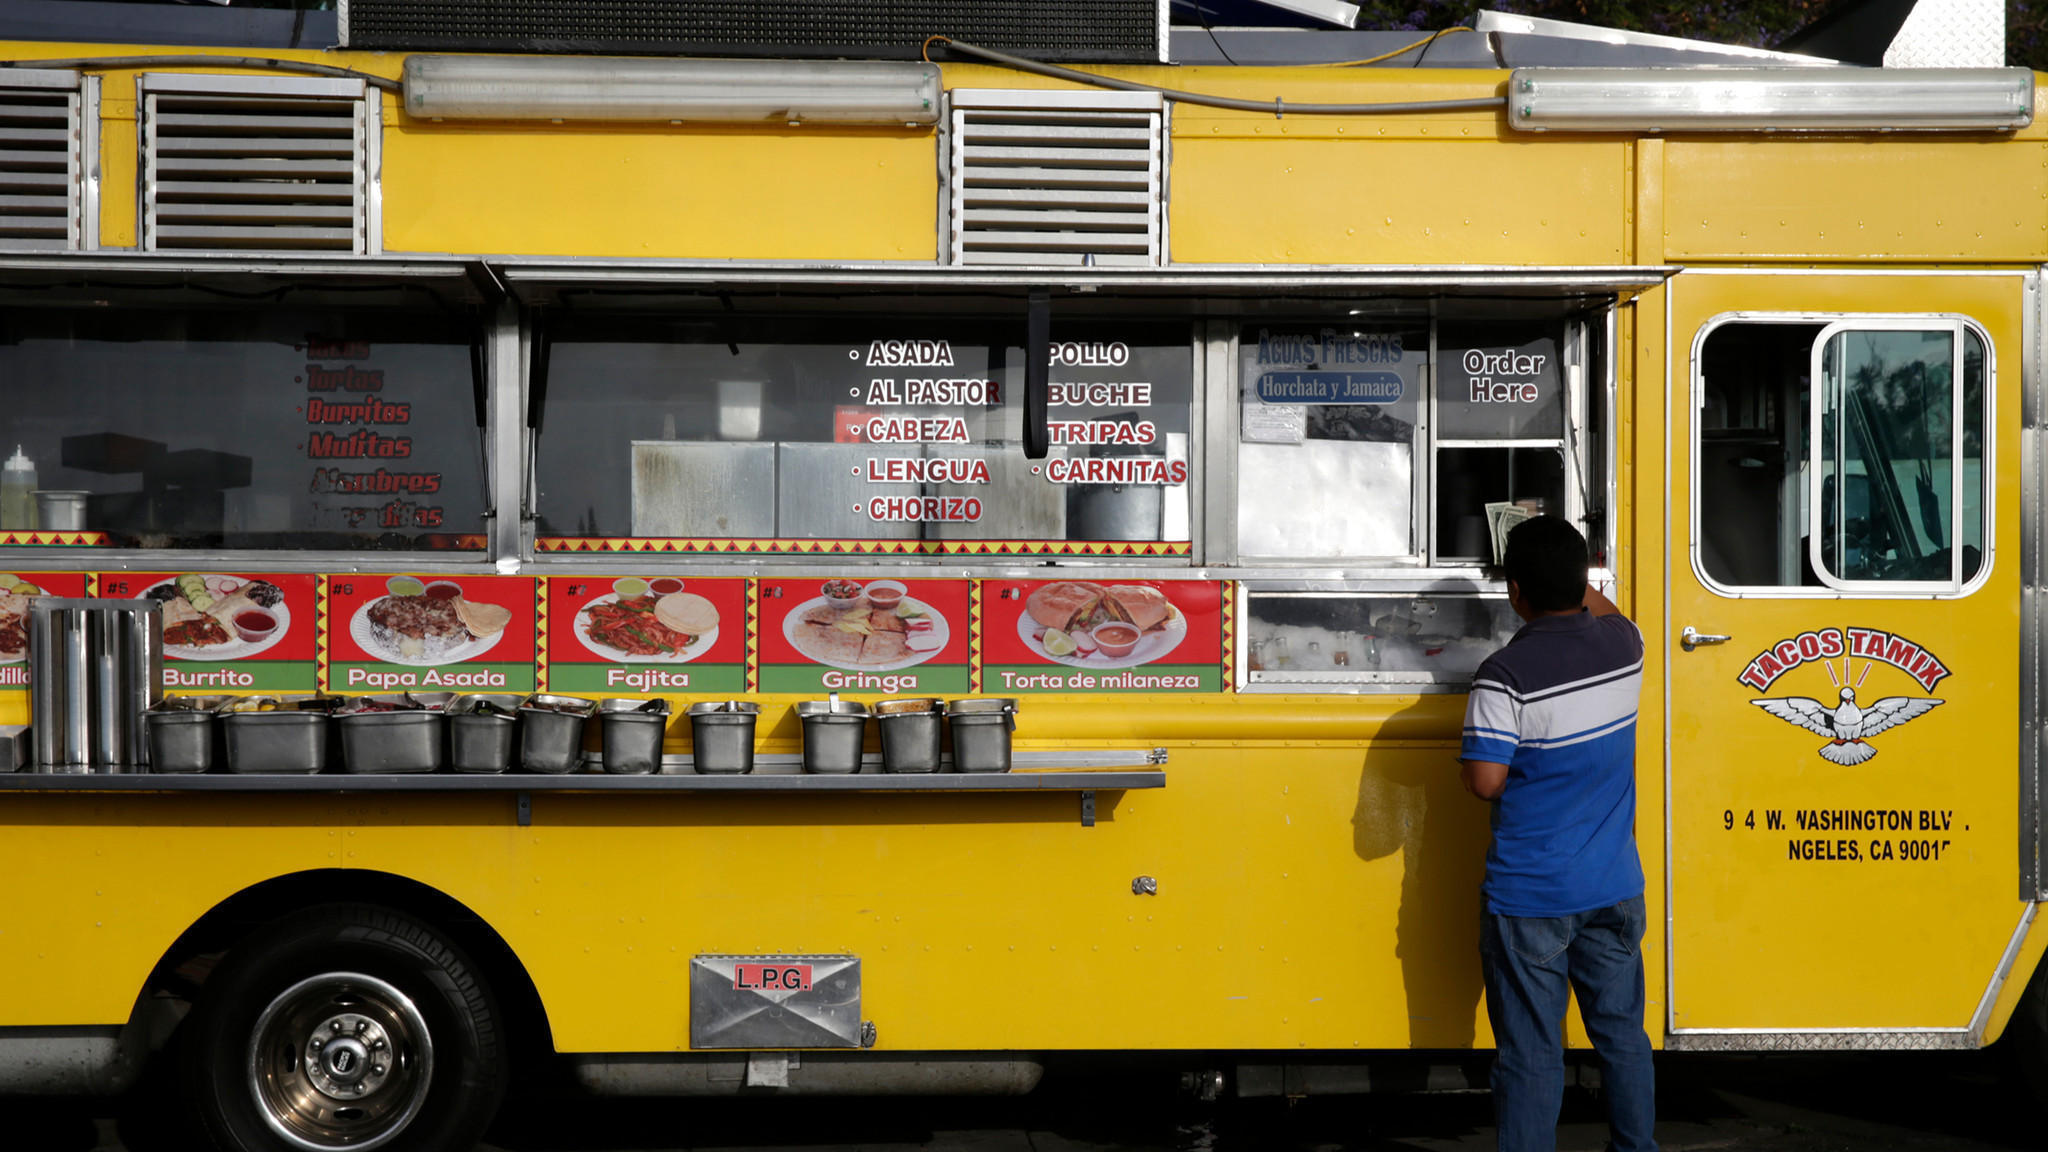 The dark side of trendy food trucks a poor health safety record la times